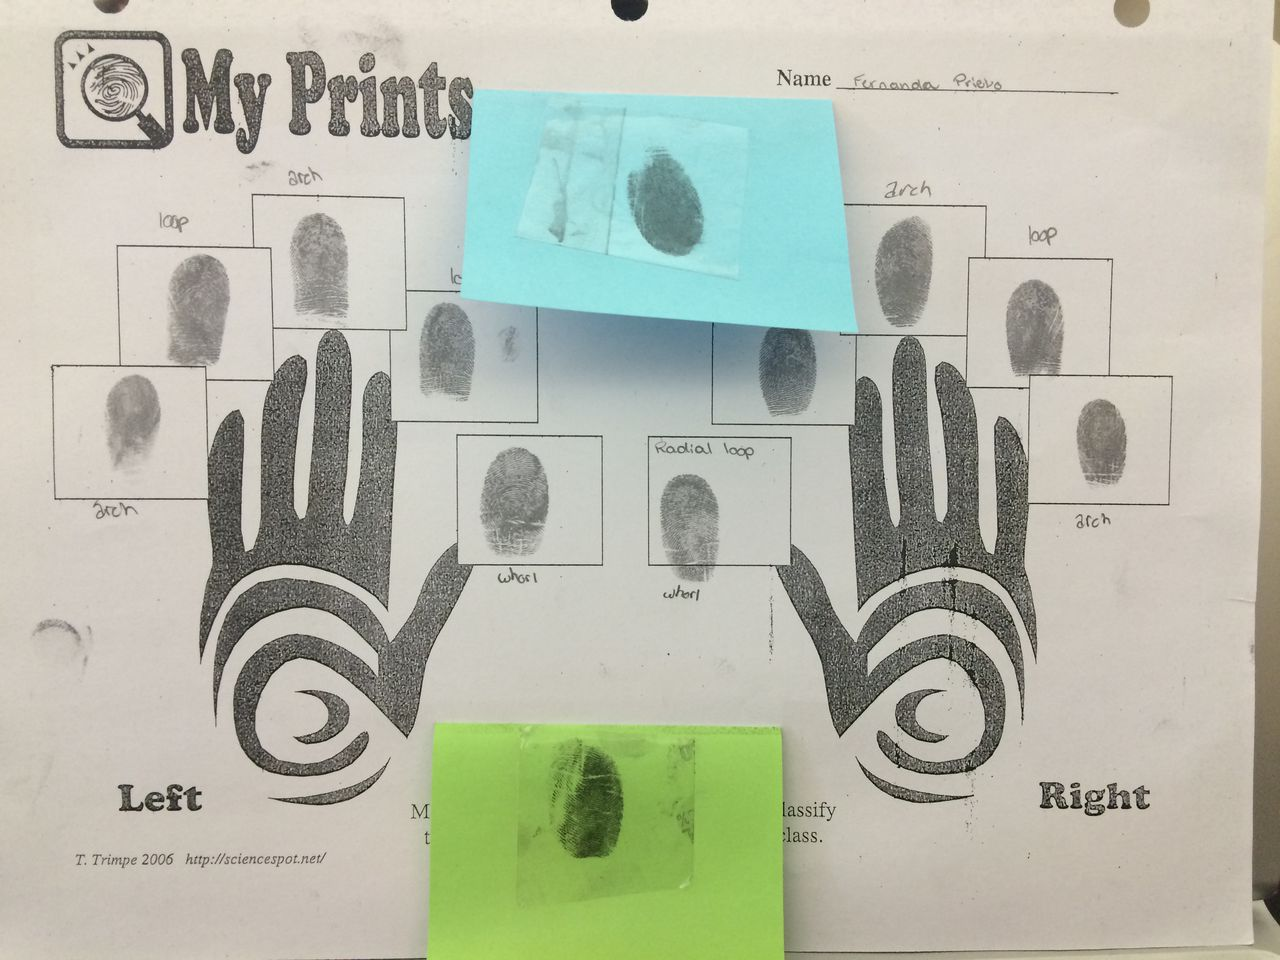 Fingerprints done in class to help classifying which kind of fingerprints they were and collection of fingerprints on objects.